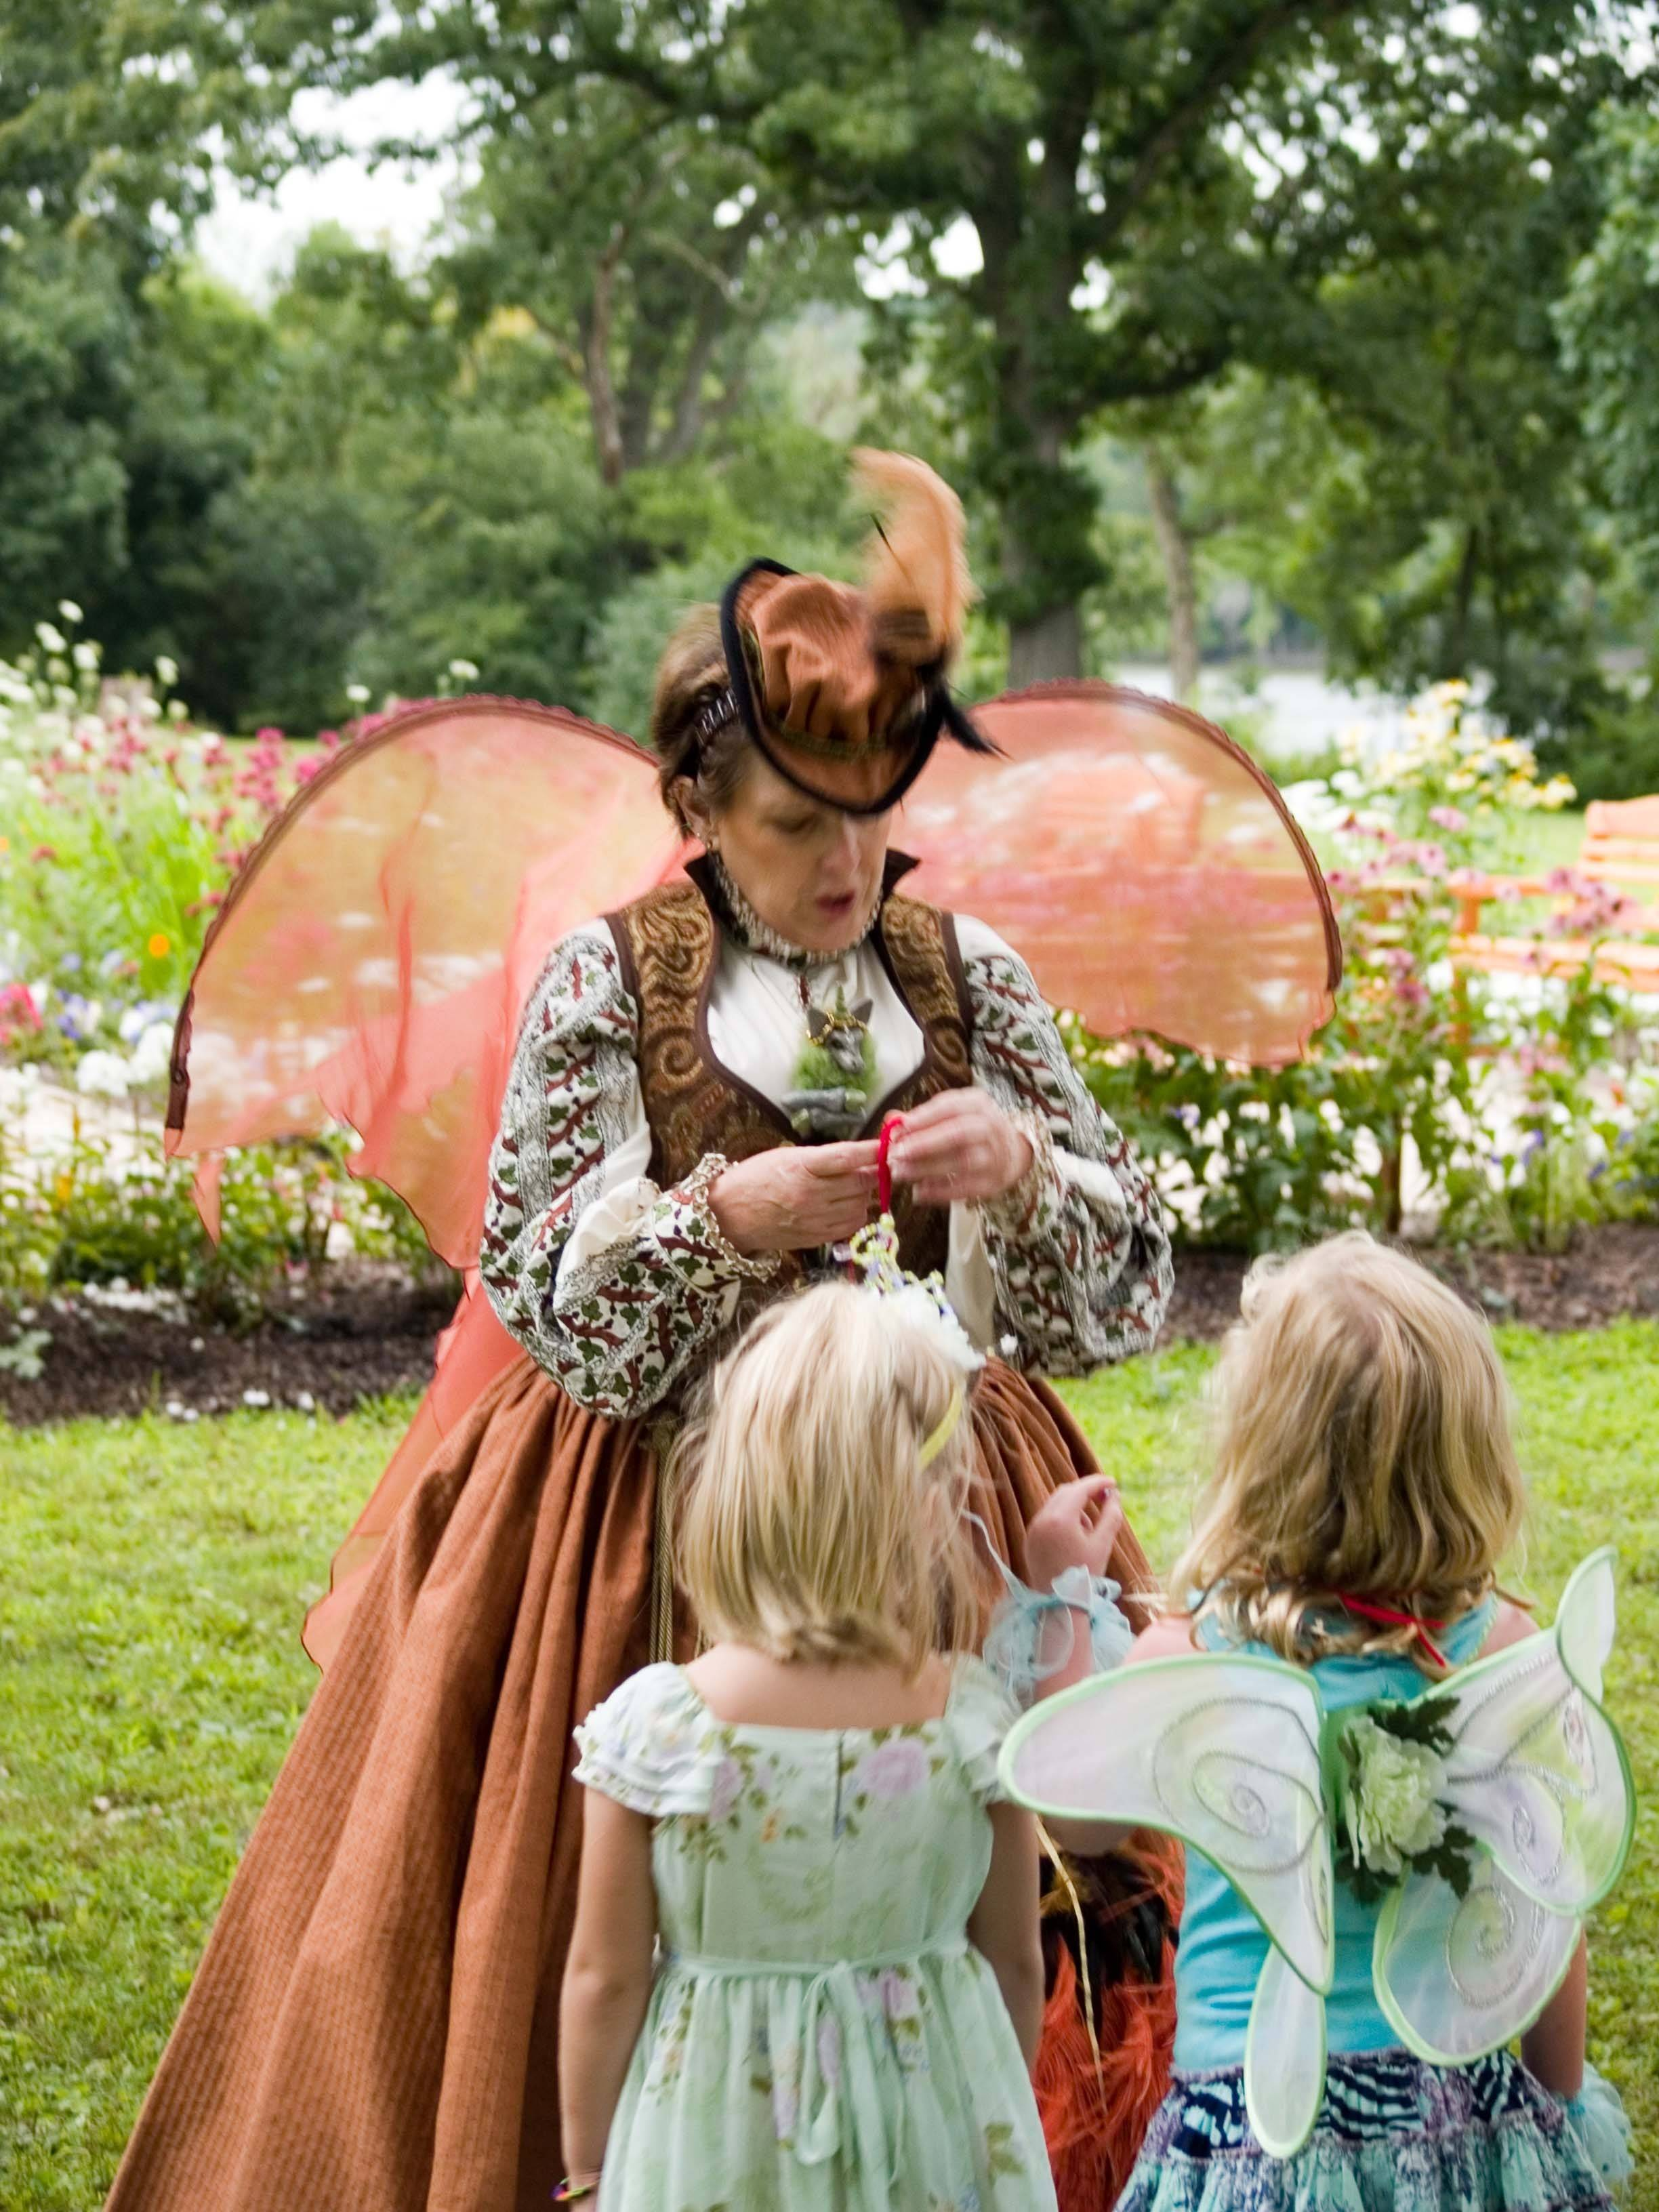 Enter a world of magic and faries at the World of Faeries festival in Soth Elgin's Vasa Park.